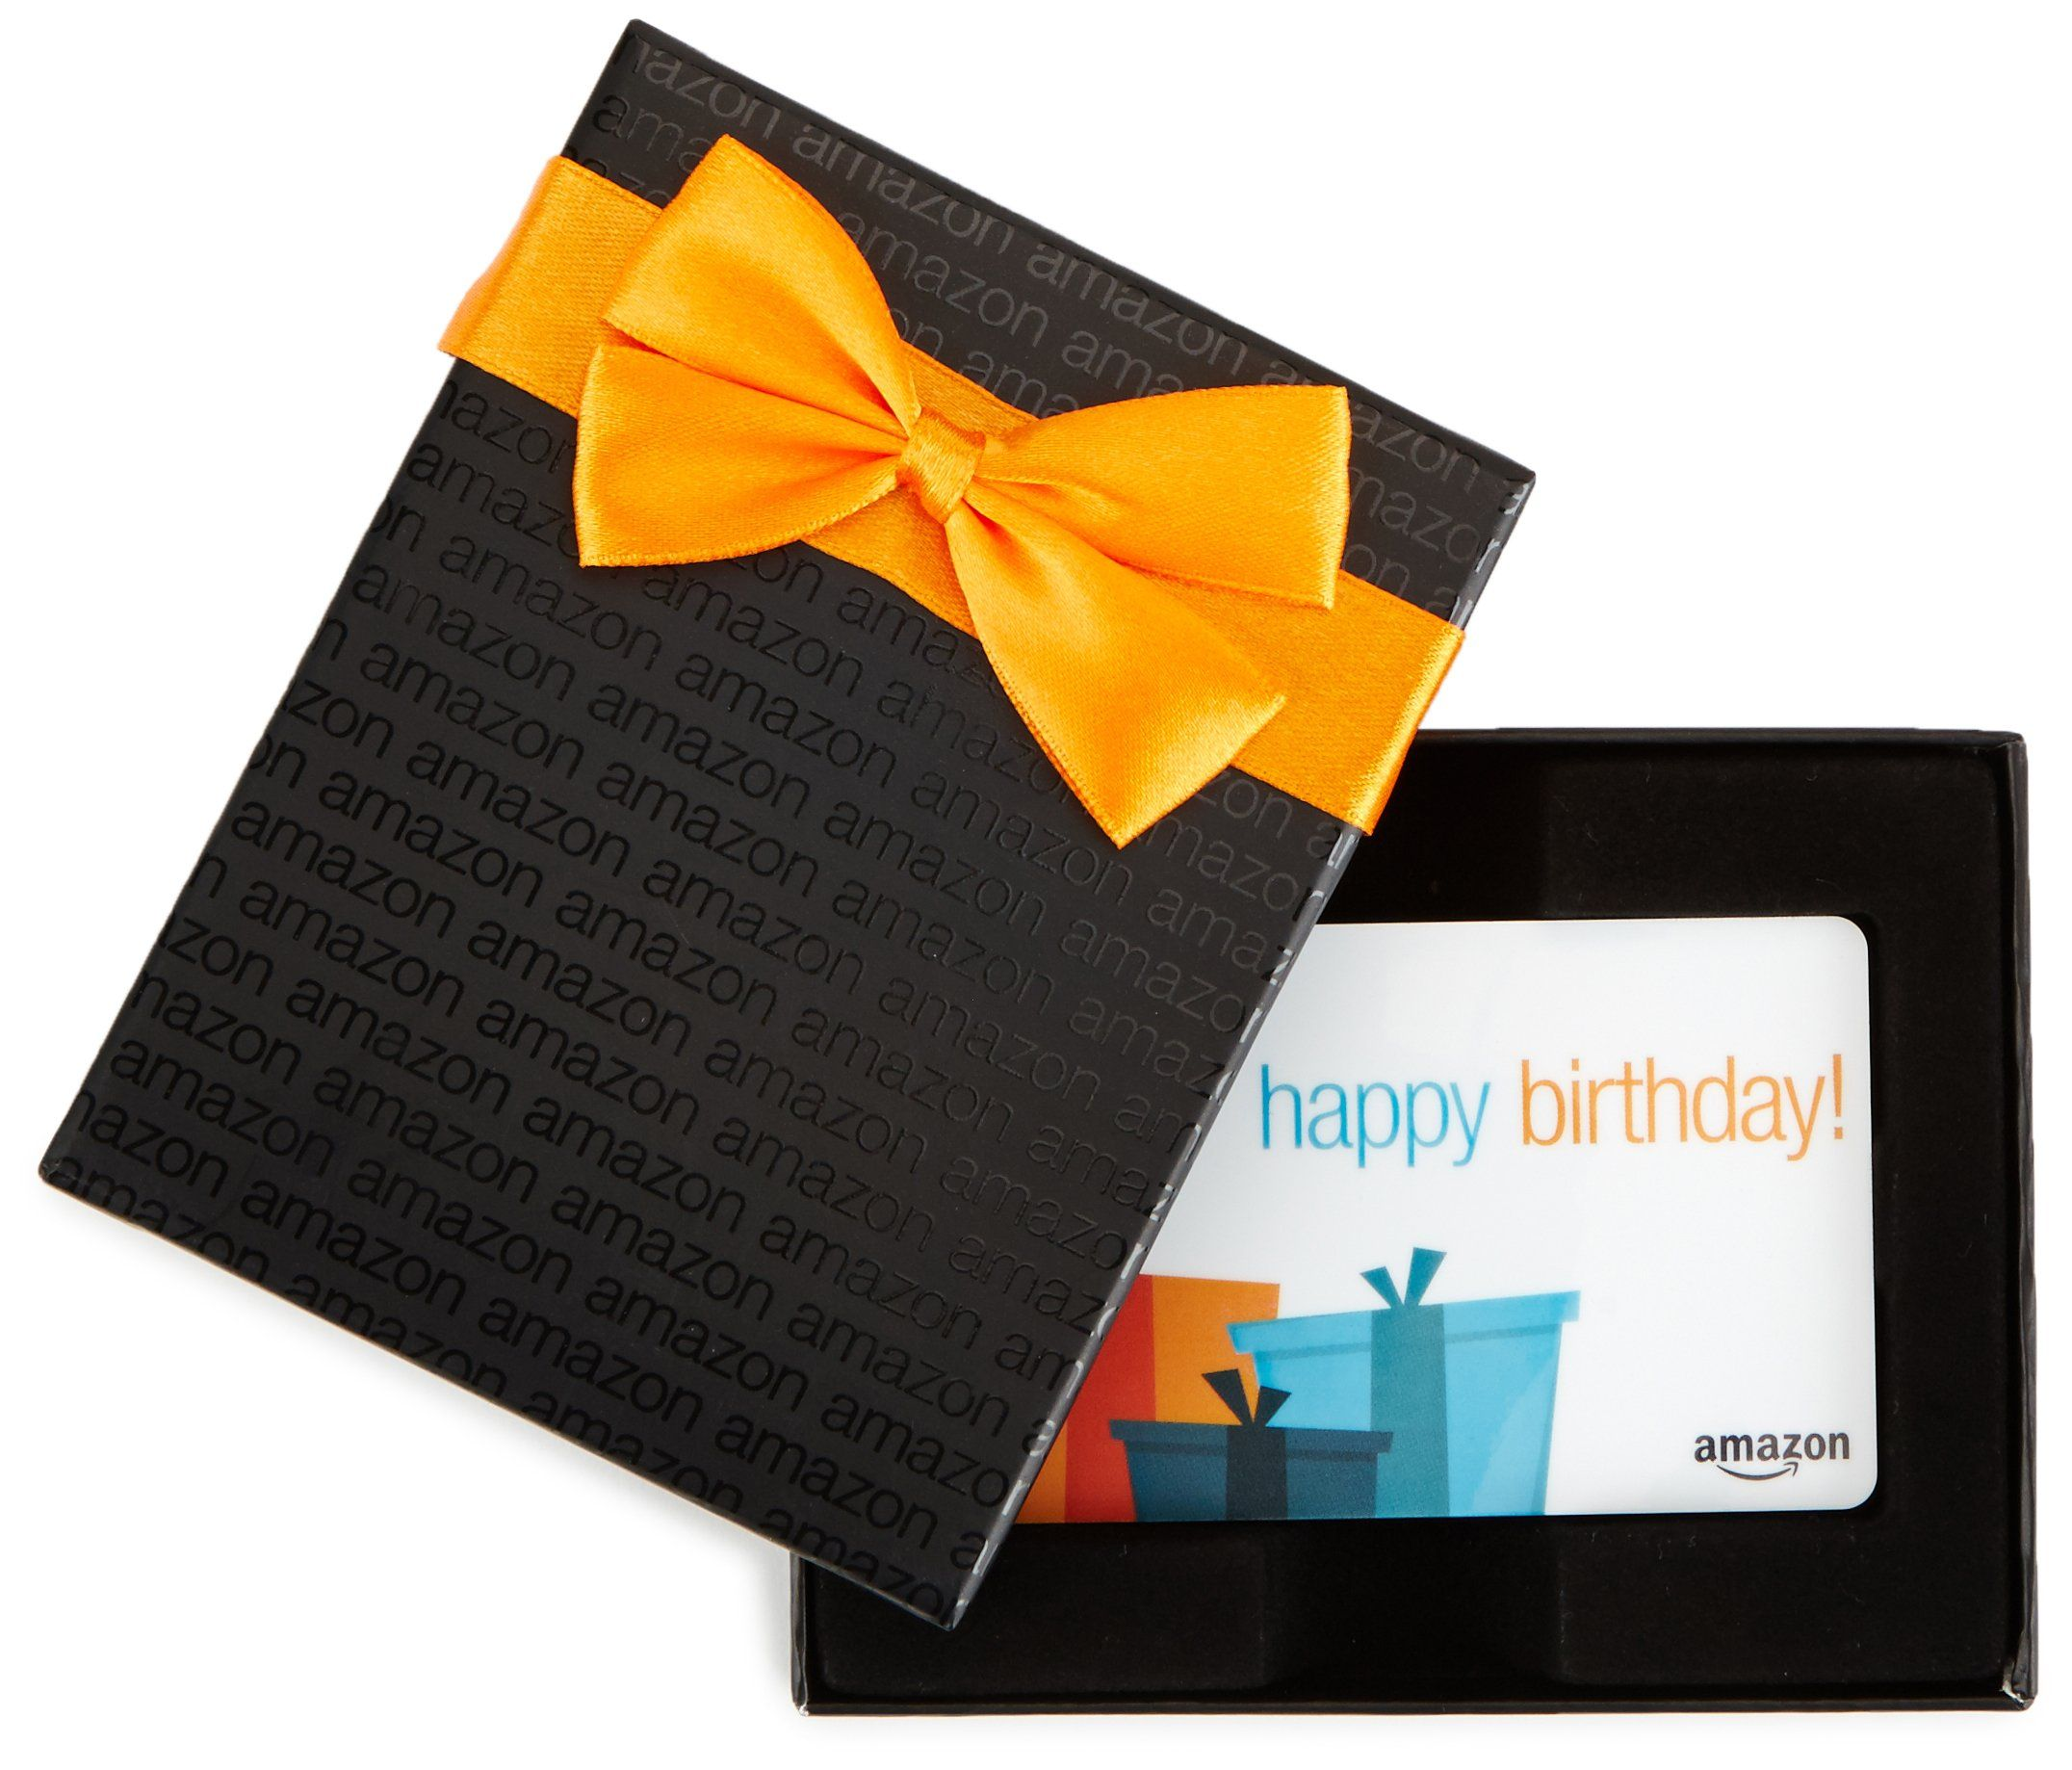 Amazon Com 150 Gift Card In A Black Gift Box Birthday Presents Card Design Click On T Happy Birthday Card Design Birthday Card Design Happy Birthday Cards